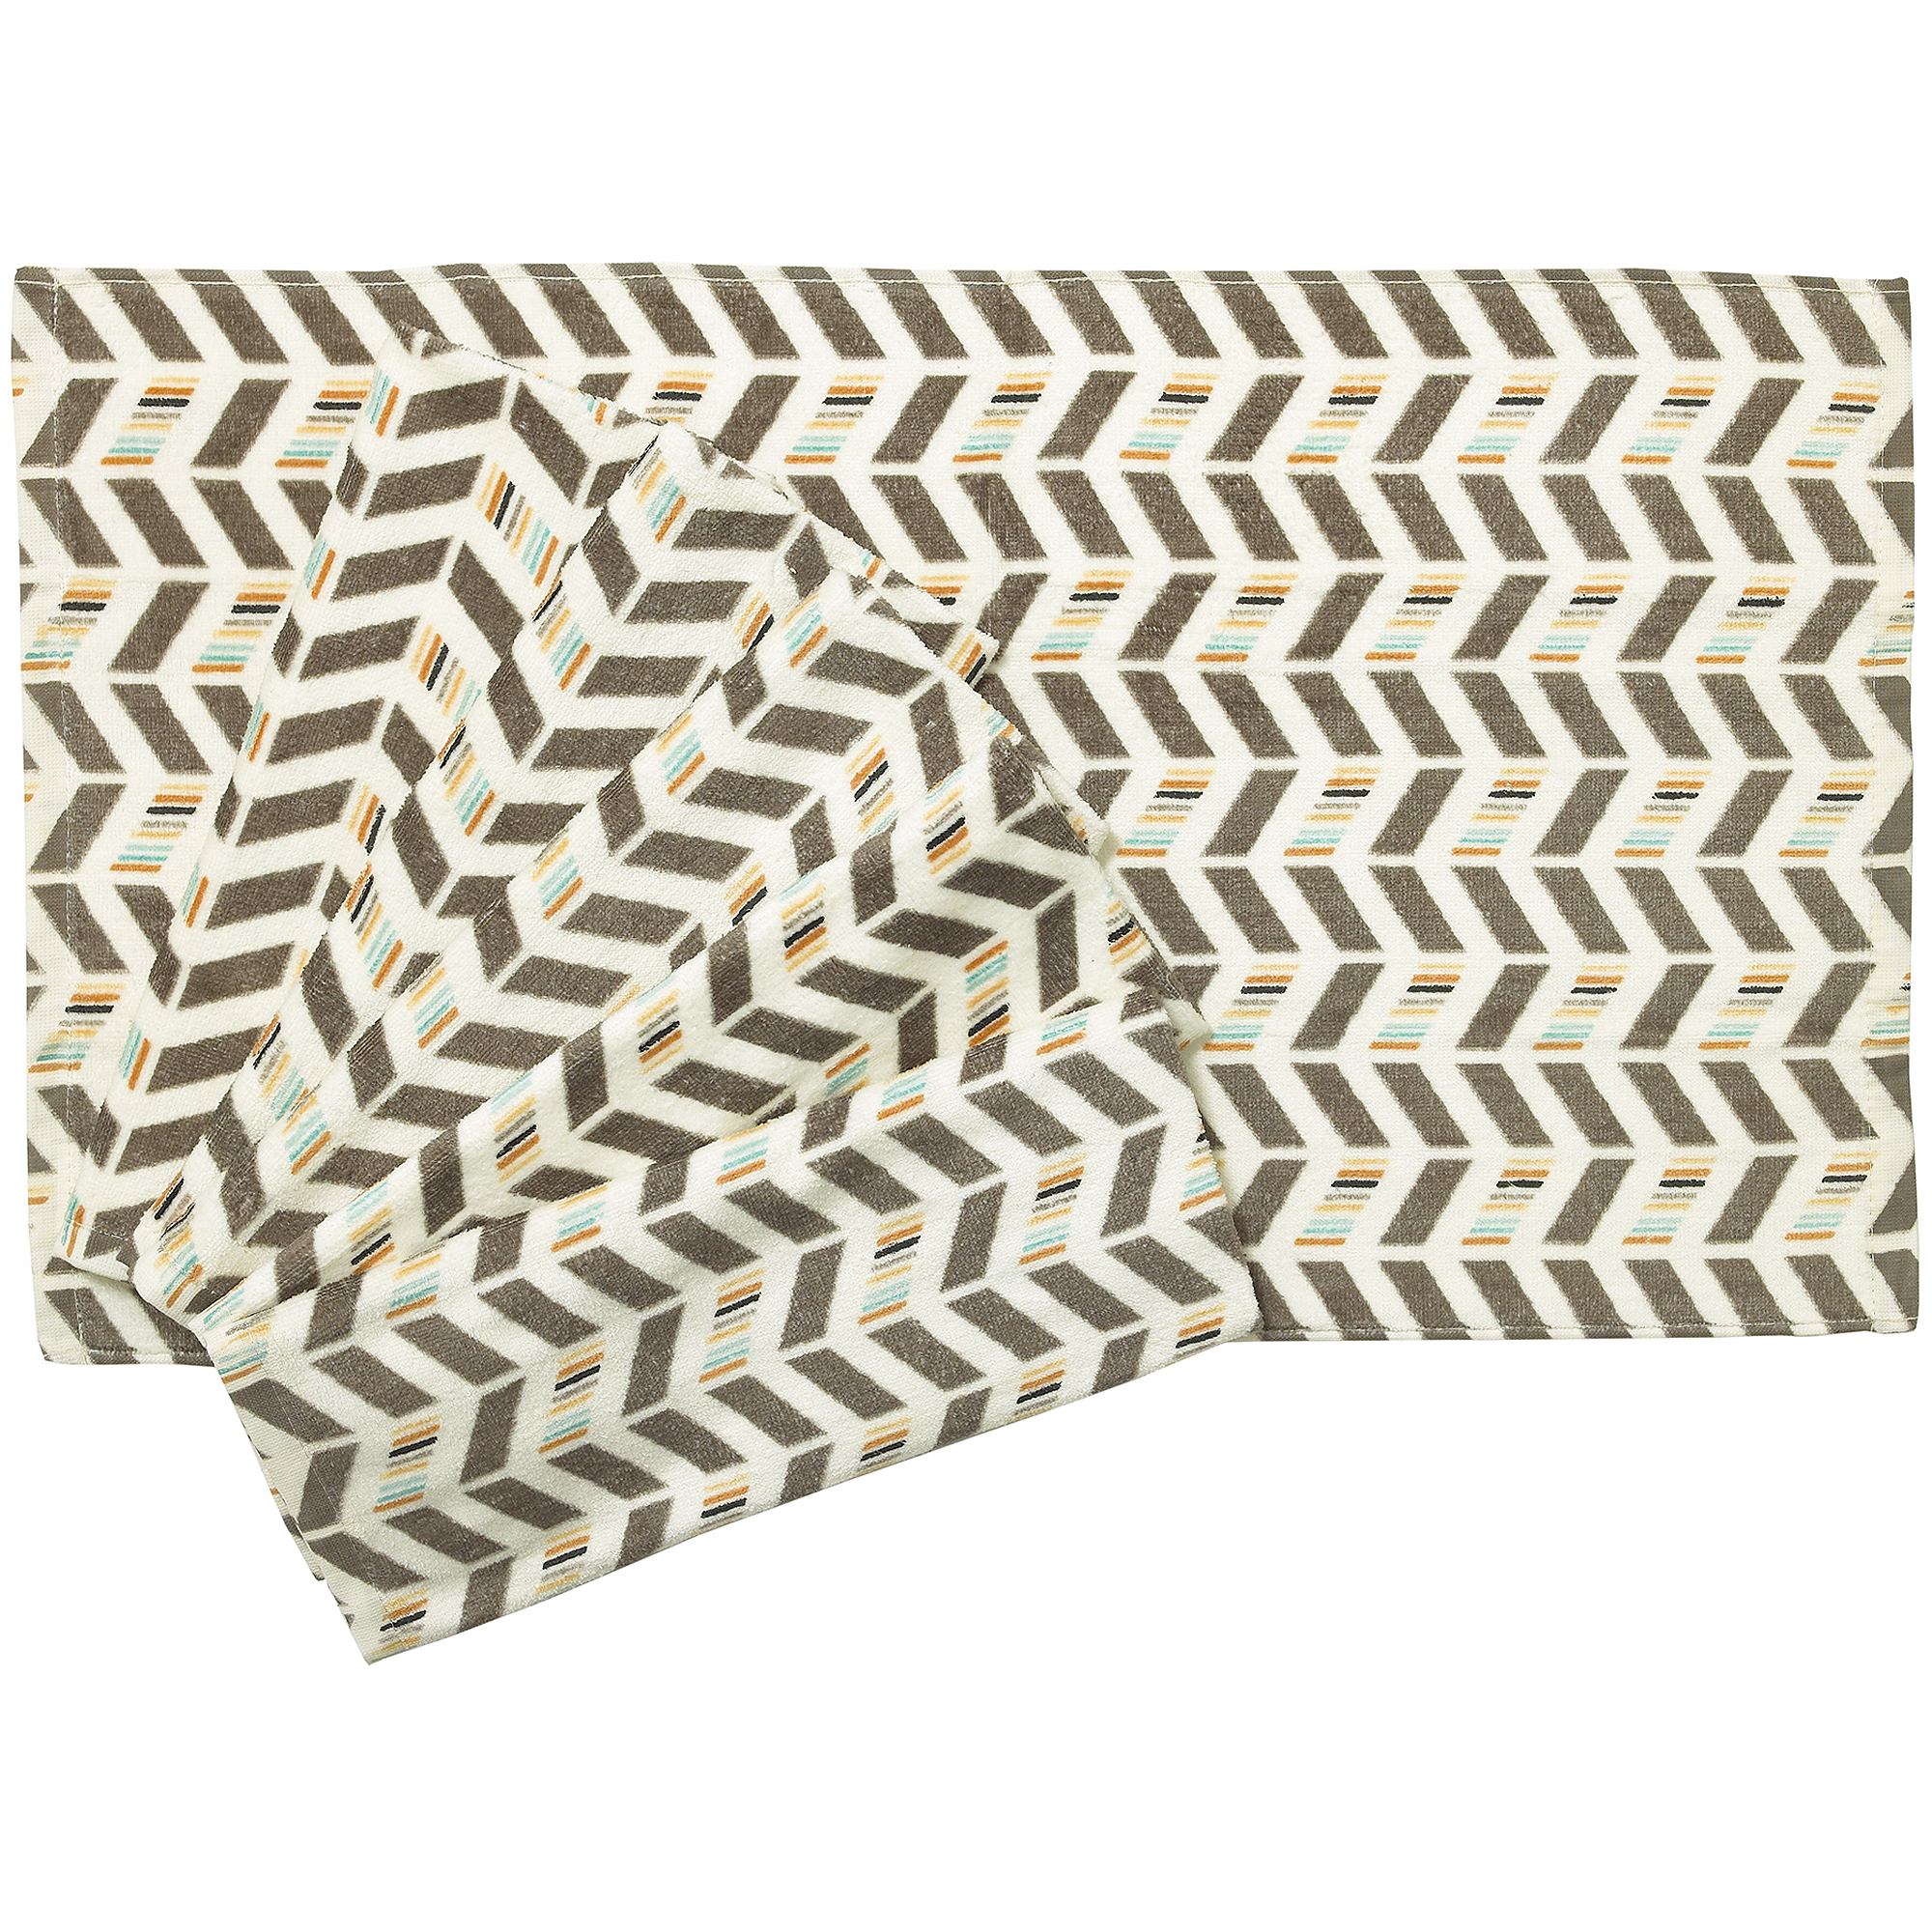 Better Homes and Gardens Herringbone Kitchen Towel, Set of 6 by Generic